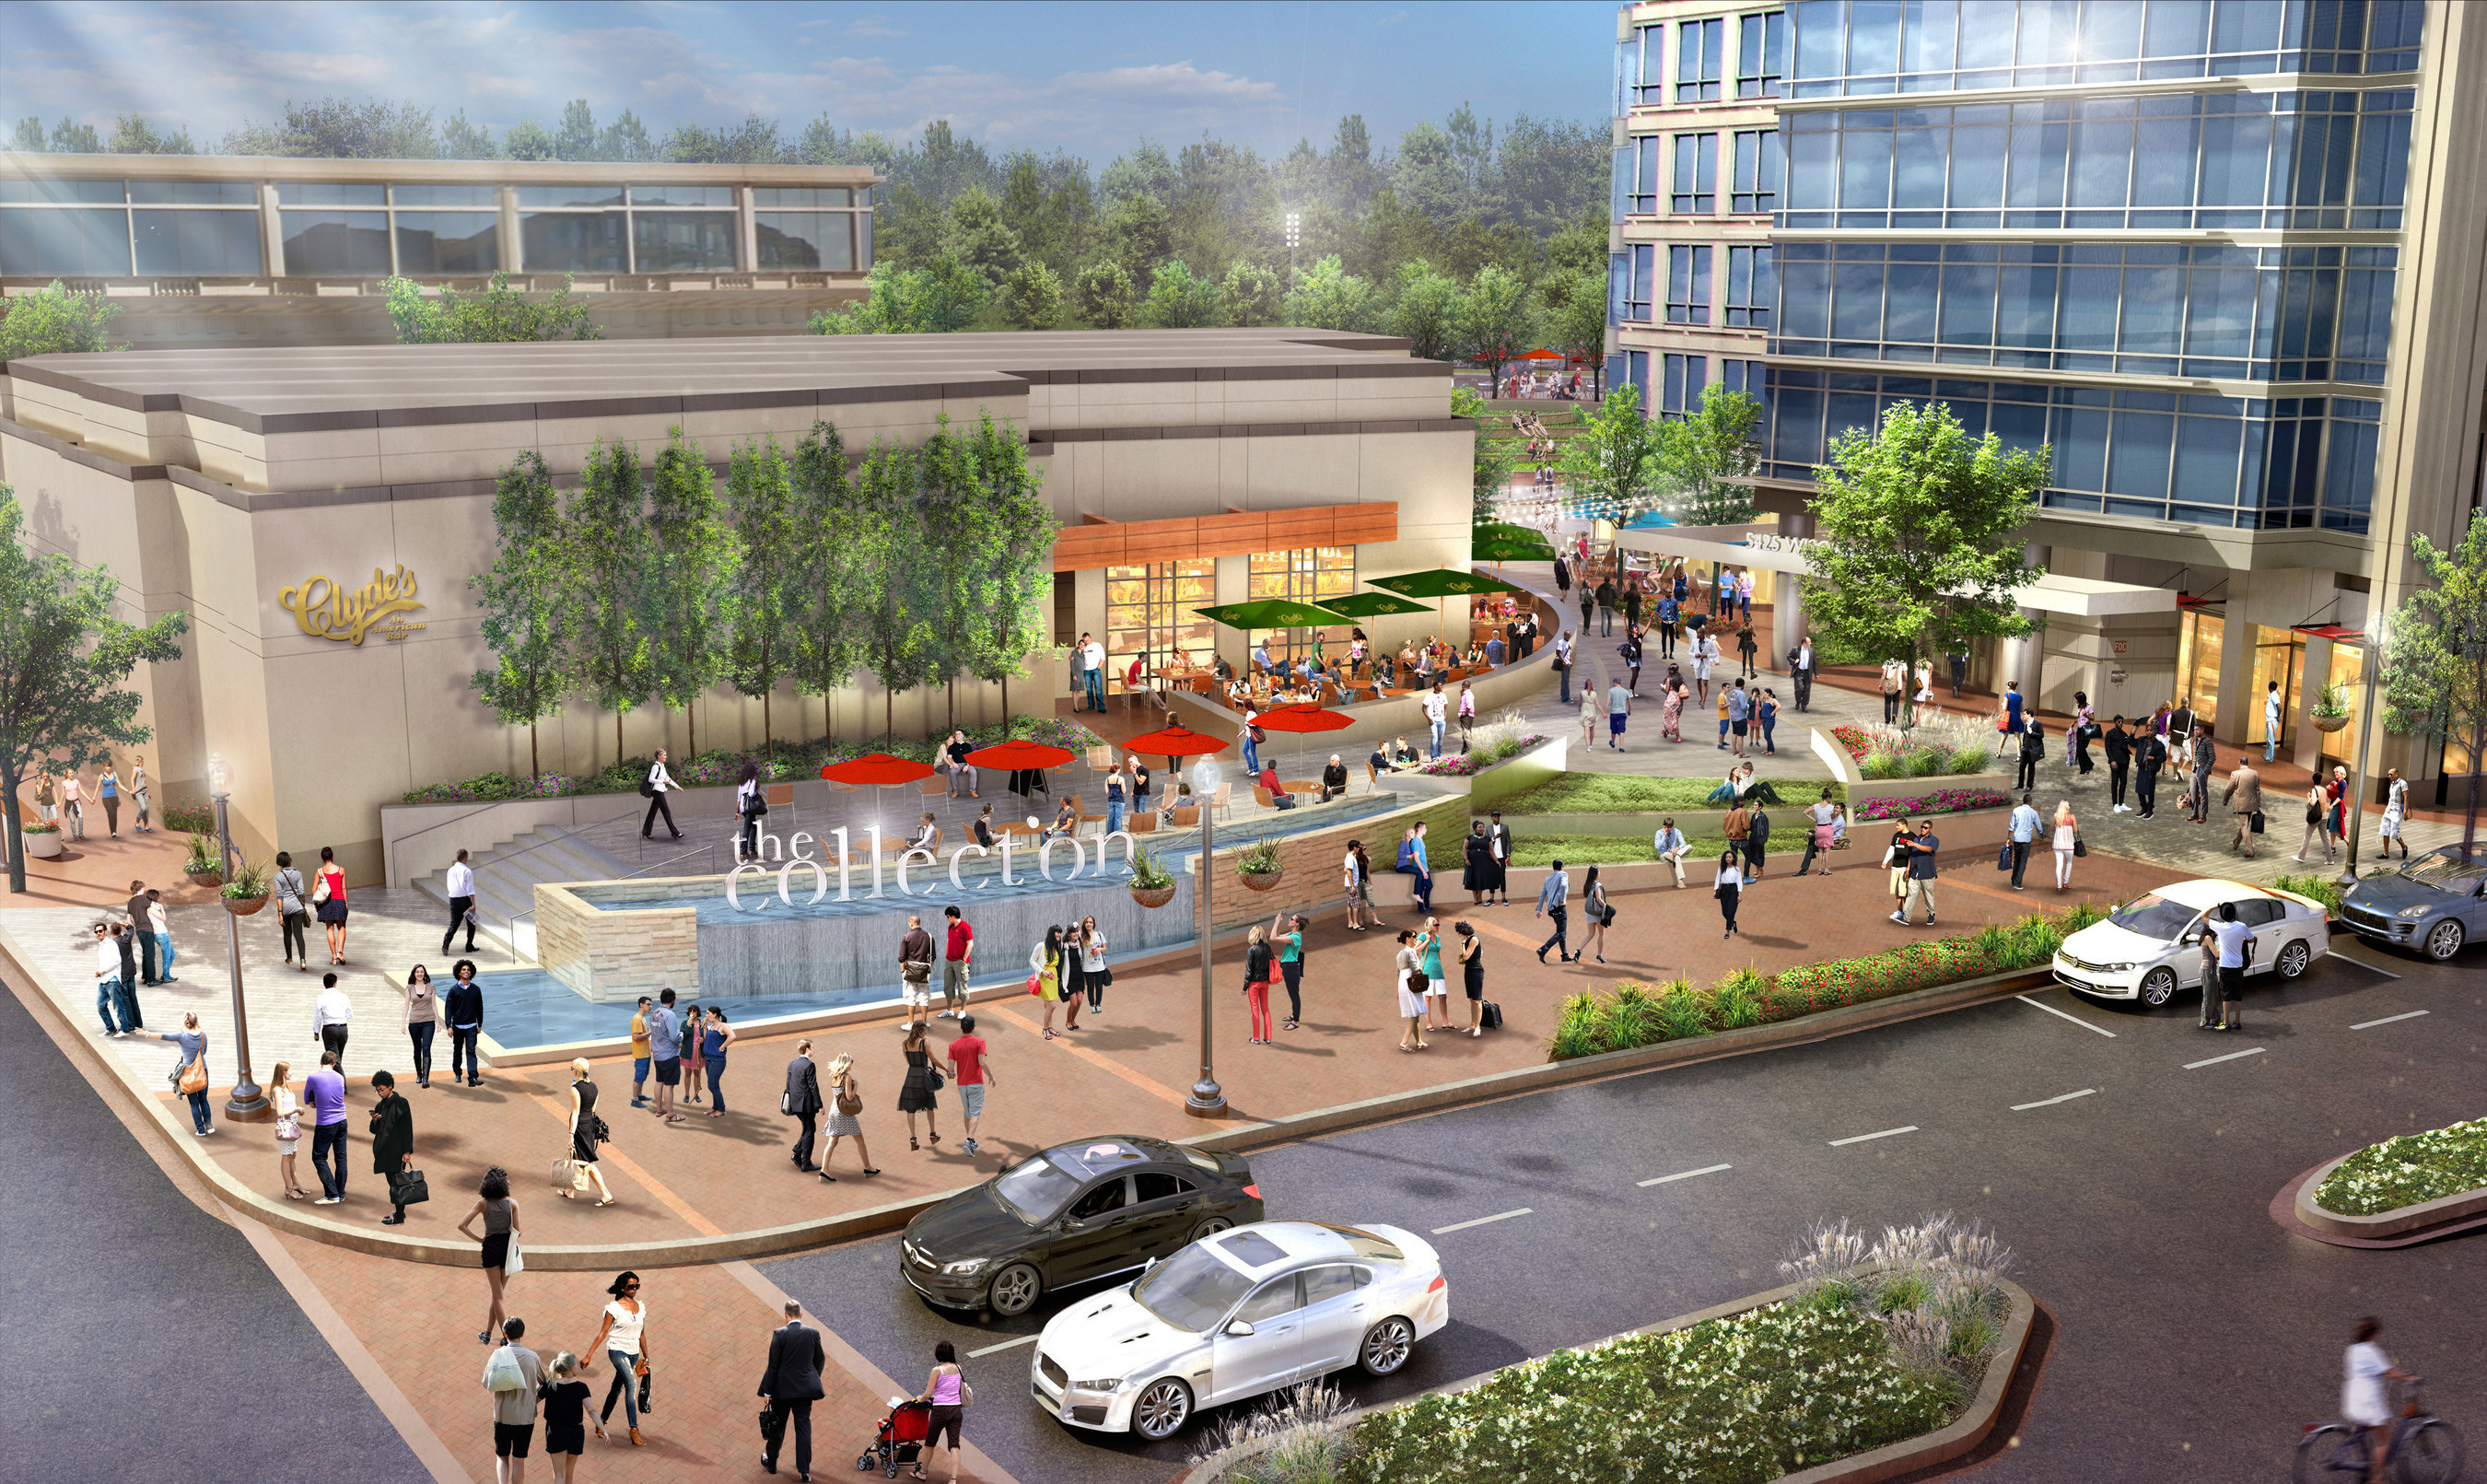 The Chevy Chase Land Company and Streetsense have announced the signing of a 5,000 square foot lease with The Little Beet Table, a New York born market-fresh restaurant that will bring wholesome, regionally-sourced food and drink to one of the central retail spaces in the inviting new plan for The Collection in Chevy Chase, MD. In the past few months, the Land Company has unveiled bold plans for a series of improvements to one of the most recognizable retail blocks in the Washington, DC area.